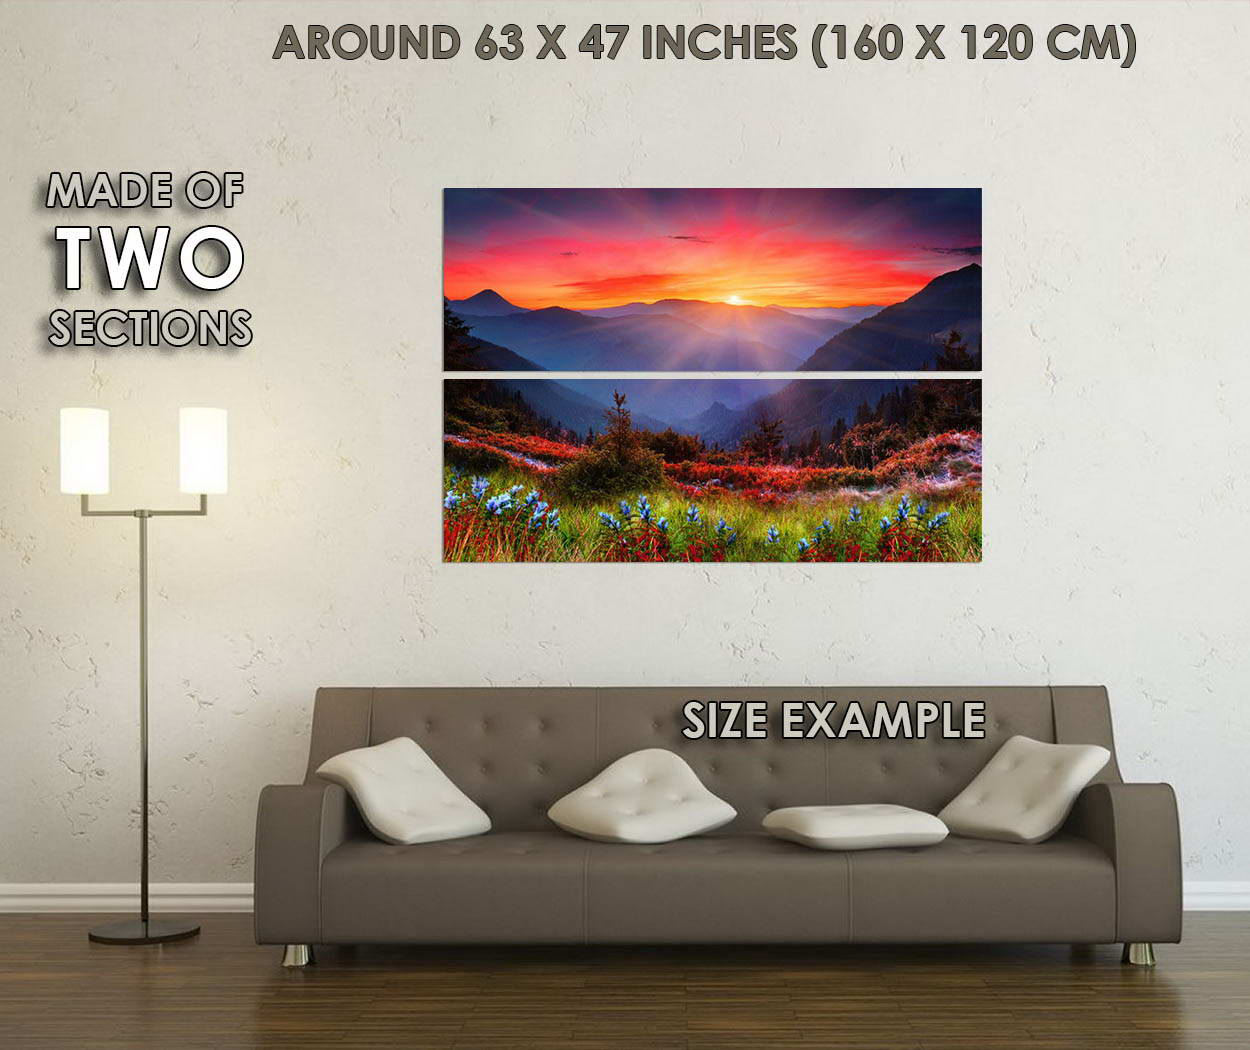 09915 Morning Sunrise - Mountains And And And Flowers Nature Art Poster AFFICHE 73d995